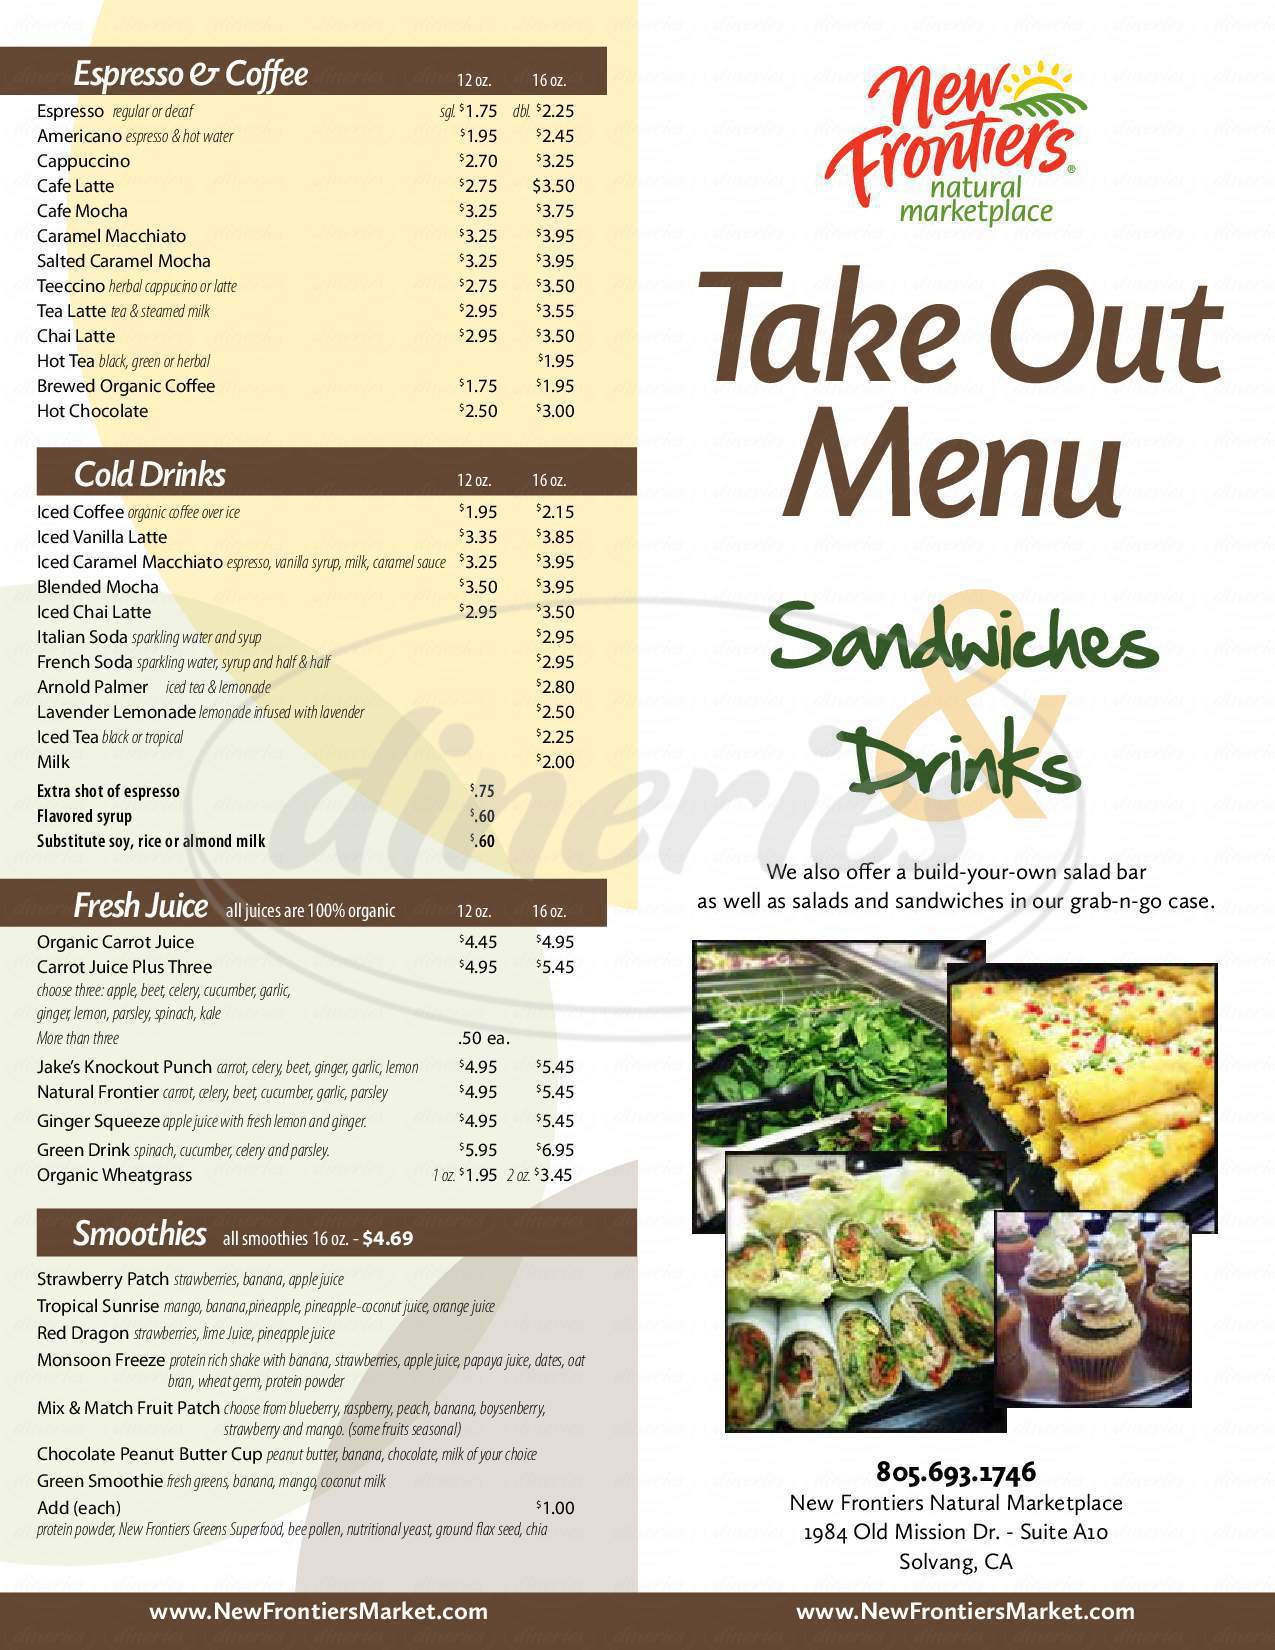 menu for New Frontiers Natural Marketplace